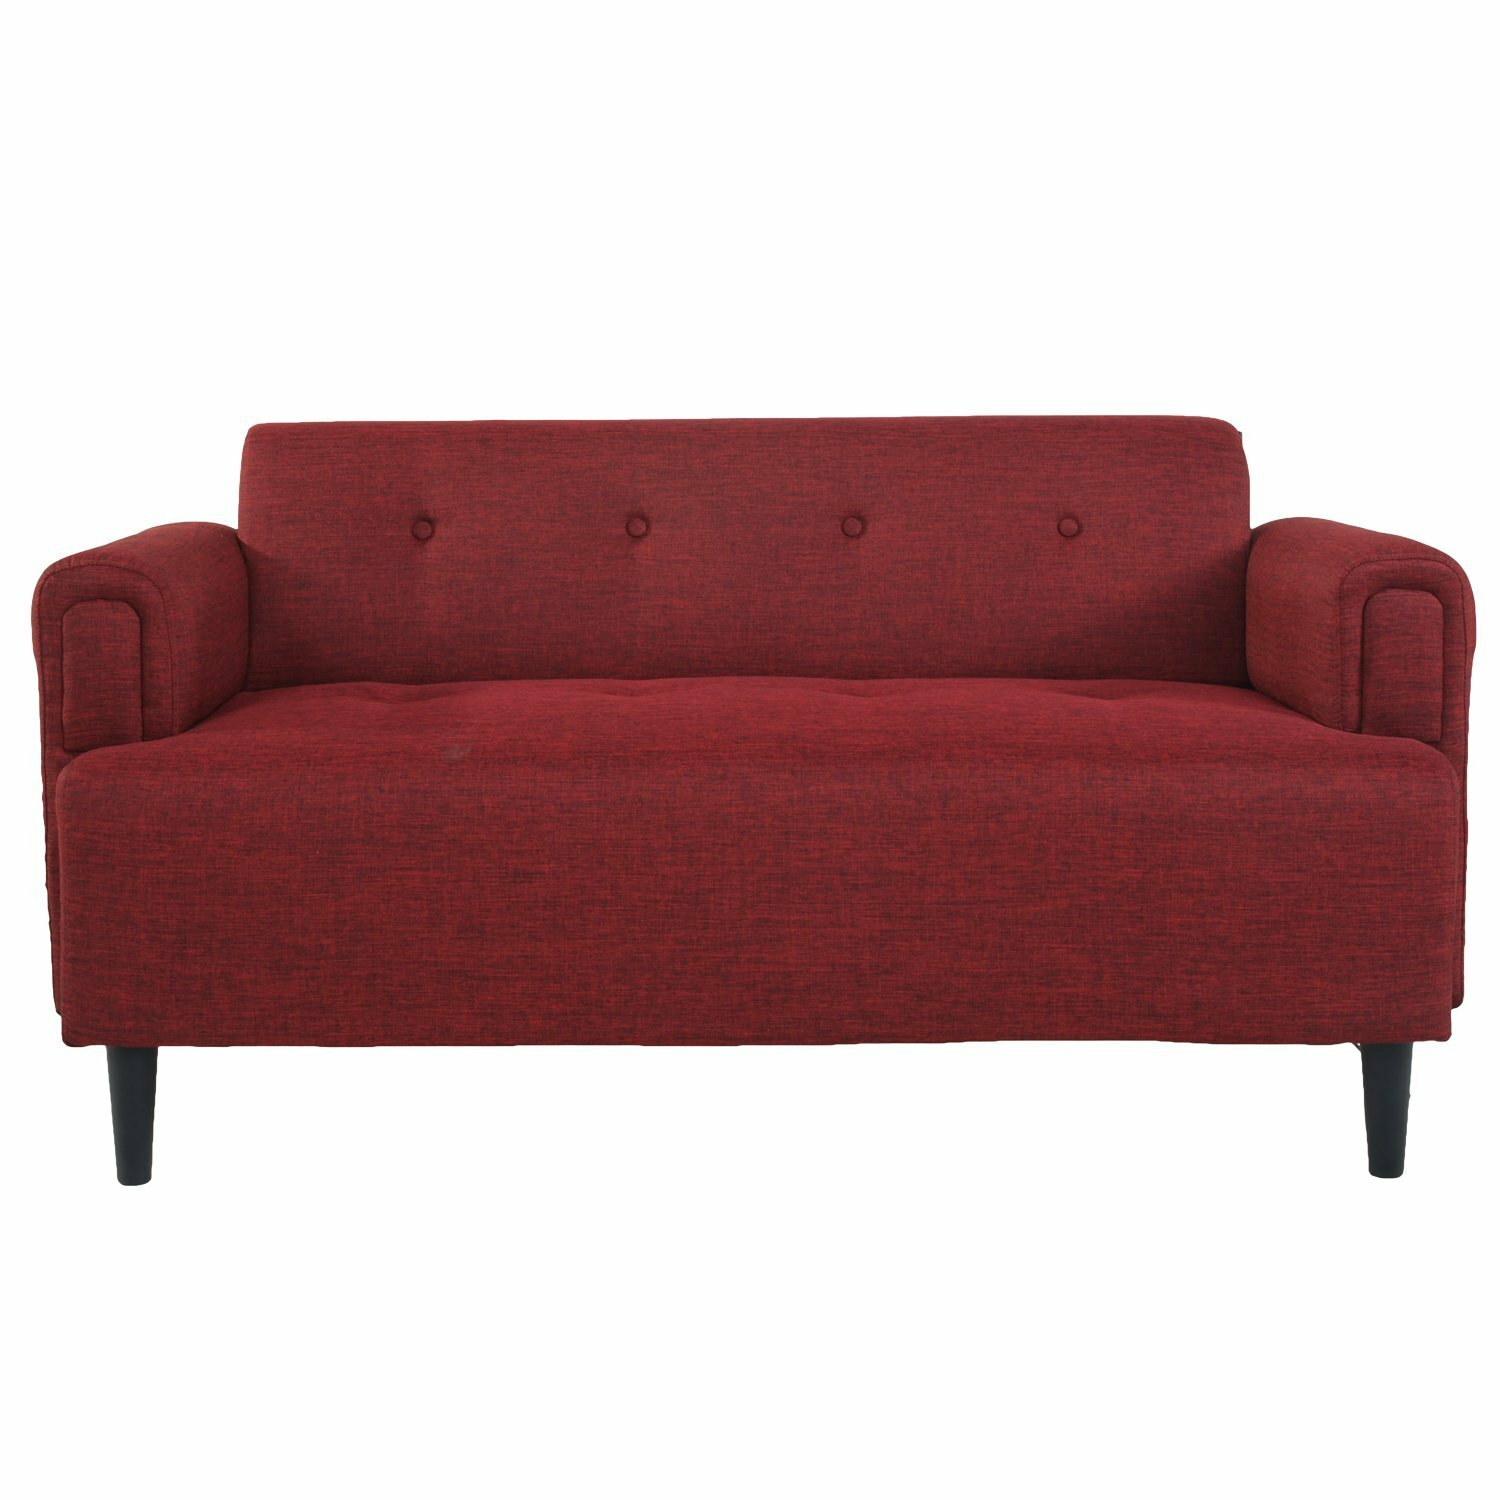 Sofa Lounge Sf Modern Fabric Lounge Suite Sectional Sofa Couch Sf 025 Deyou Thesofa